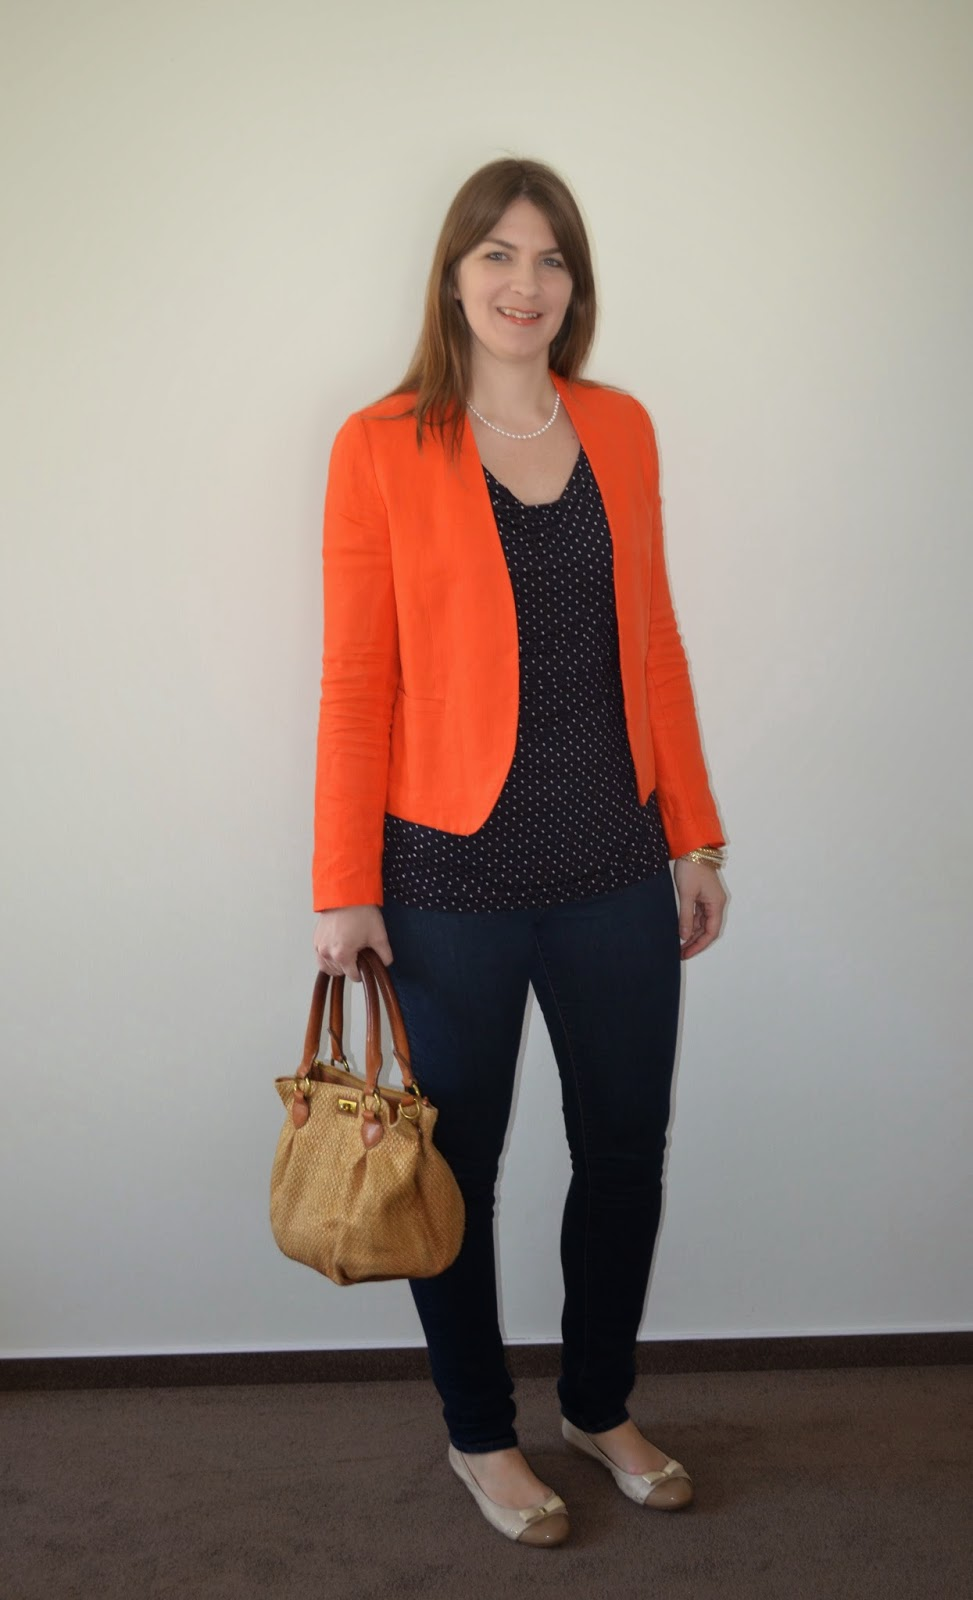 Review of Long Tall Sally Polka Dot Top, Tall Loft Blazer, Tall Banana Republic Skinny Jeans,